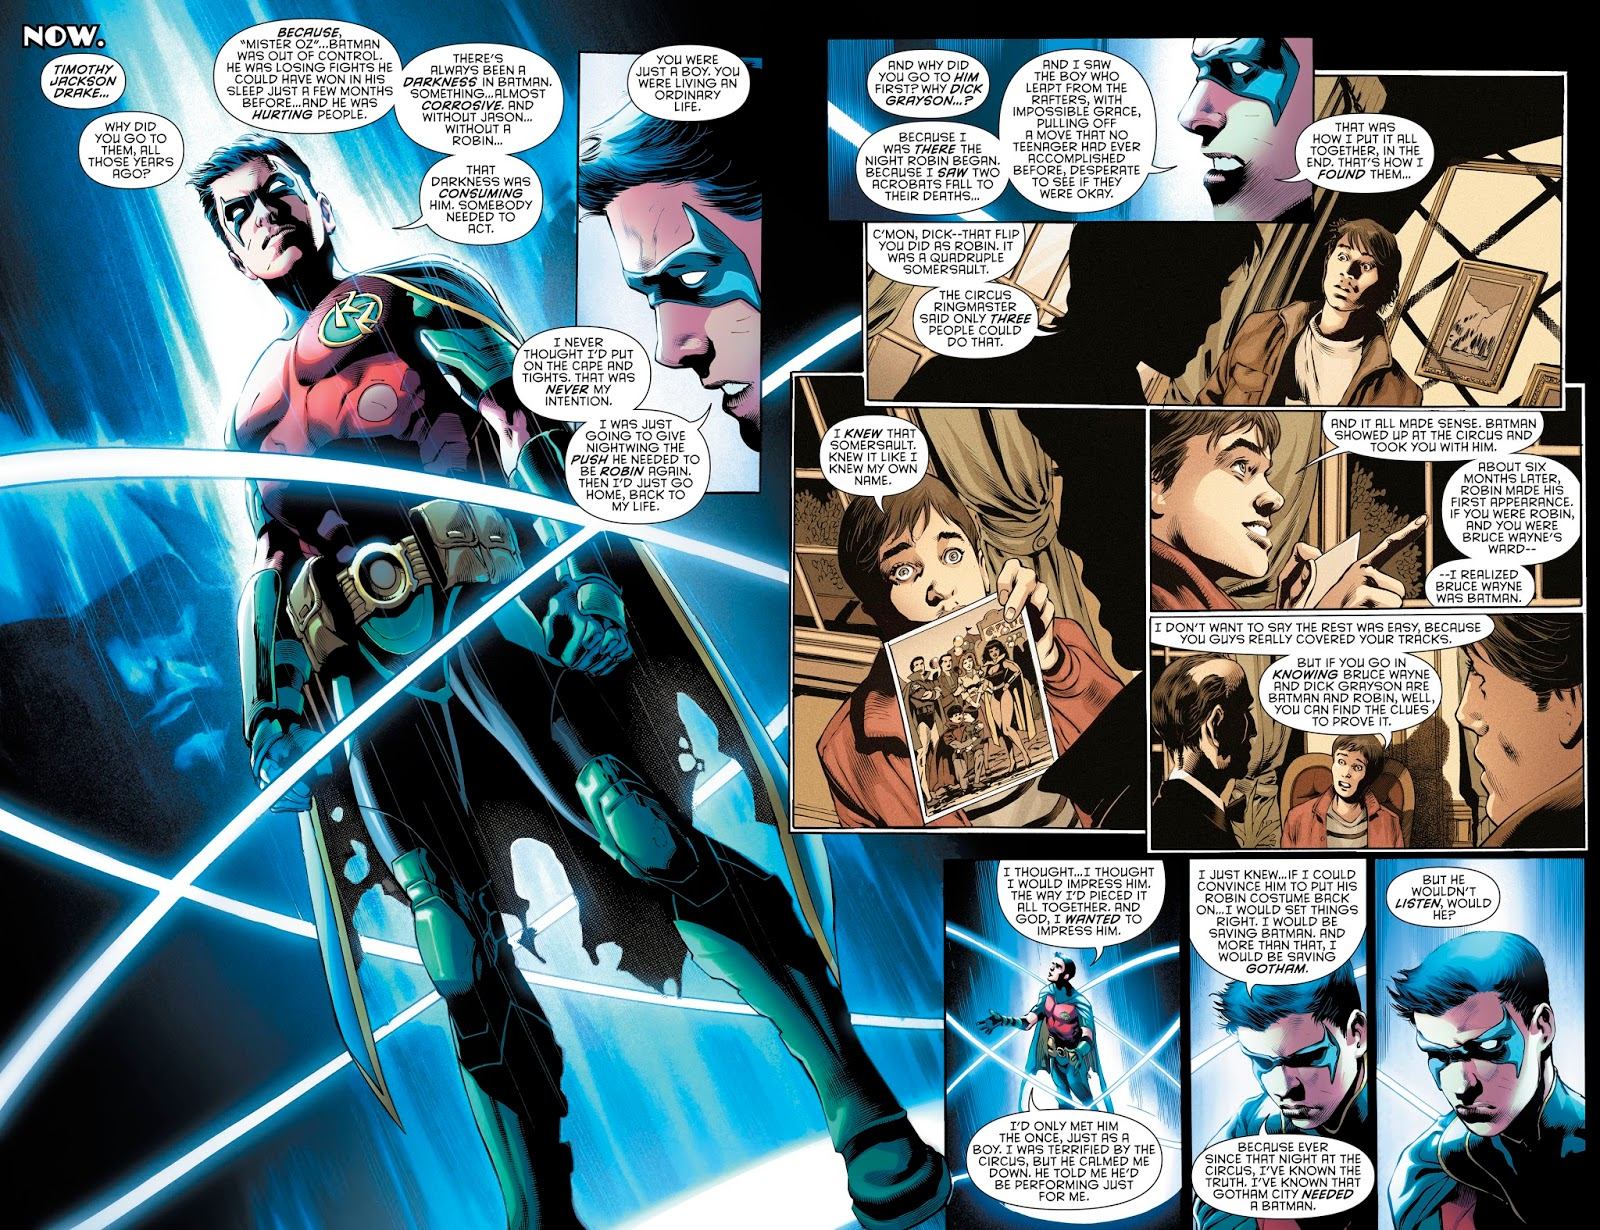 Dick Grayson And Tim Drake's First Meeting (Rebirth)